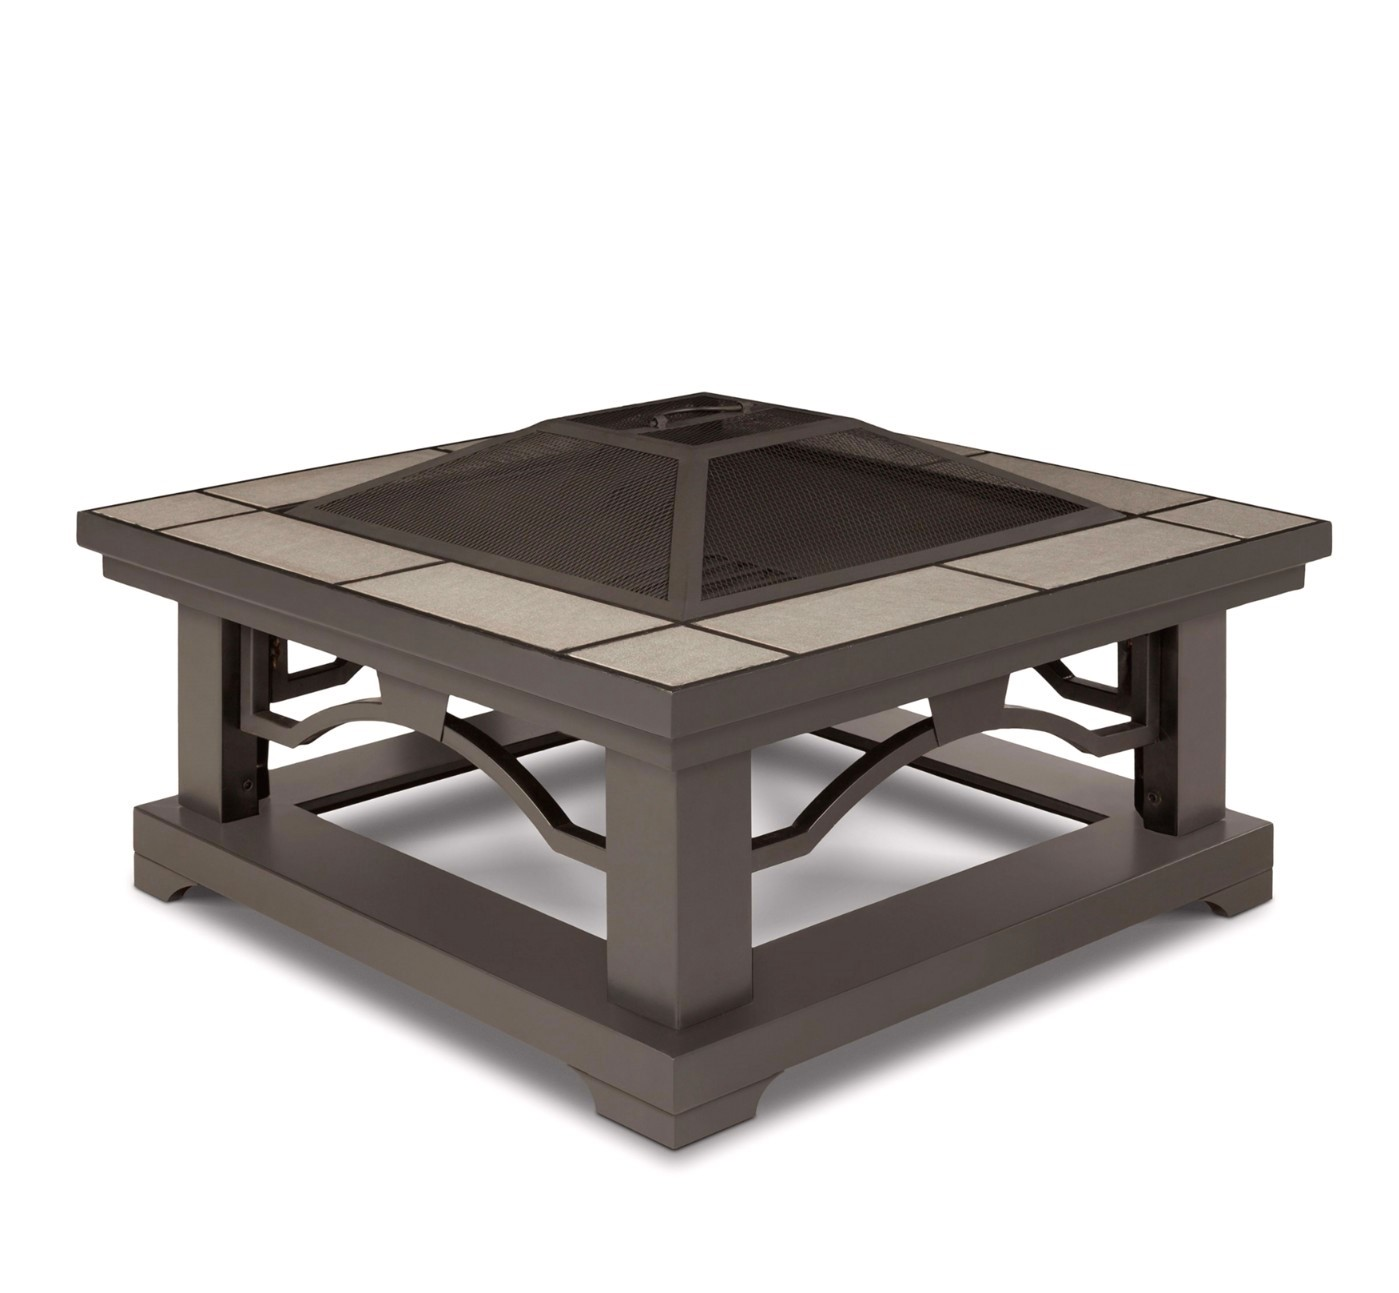 Crestone Outdoor 34 Quot Square Fire Pit In Grey With Grey